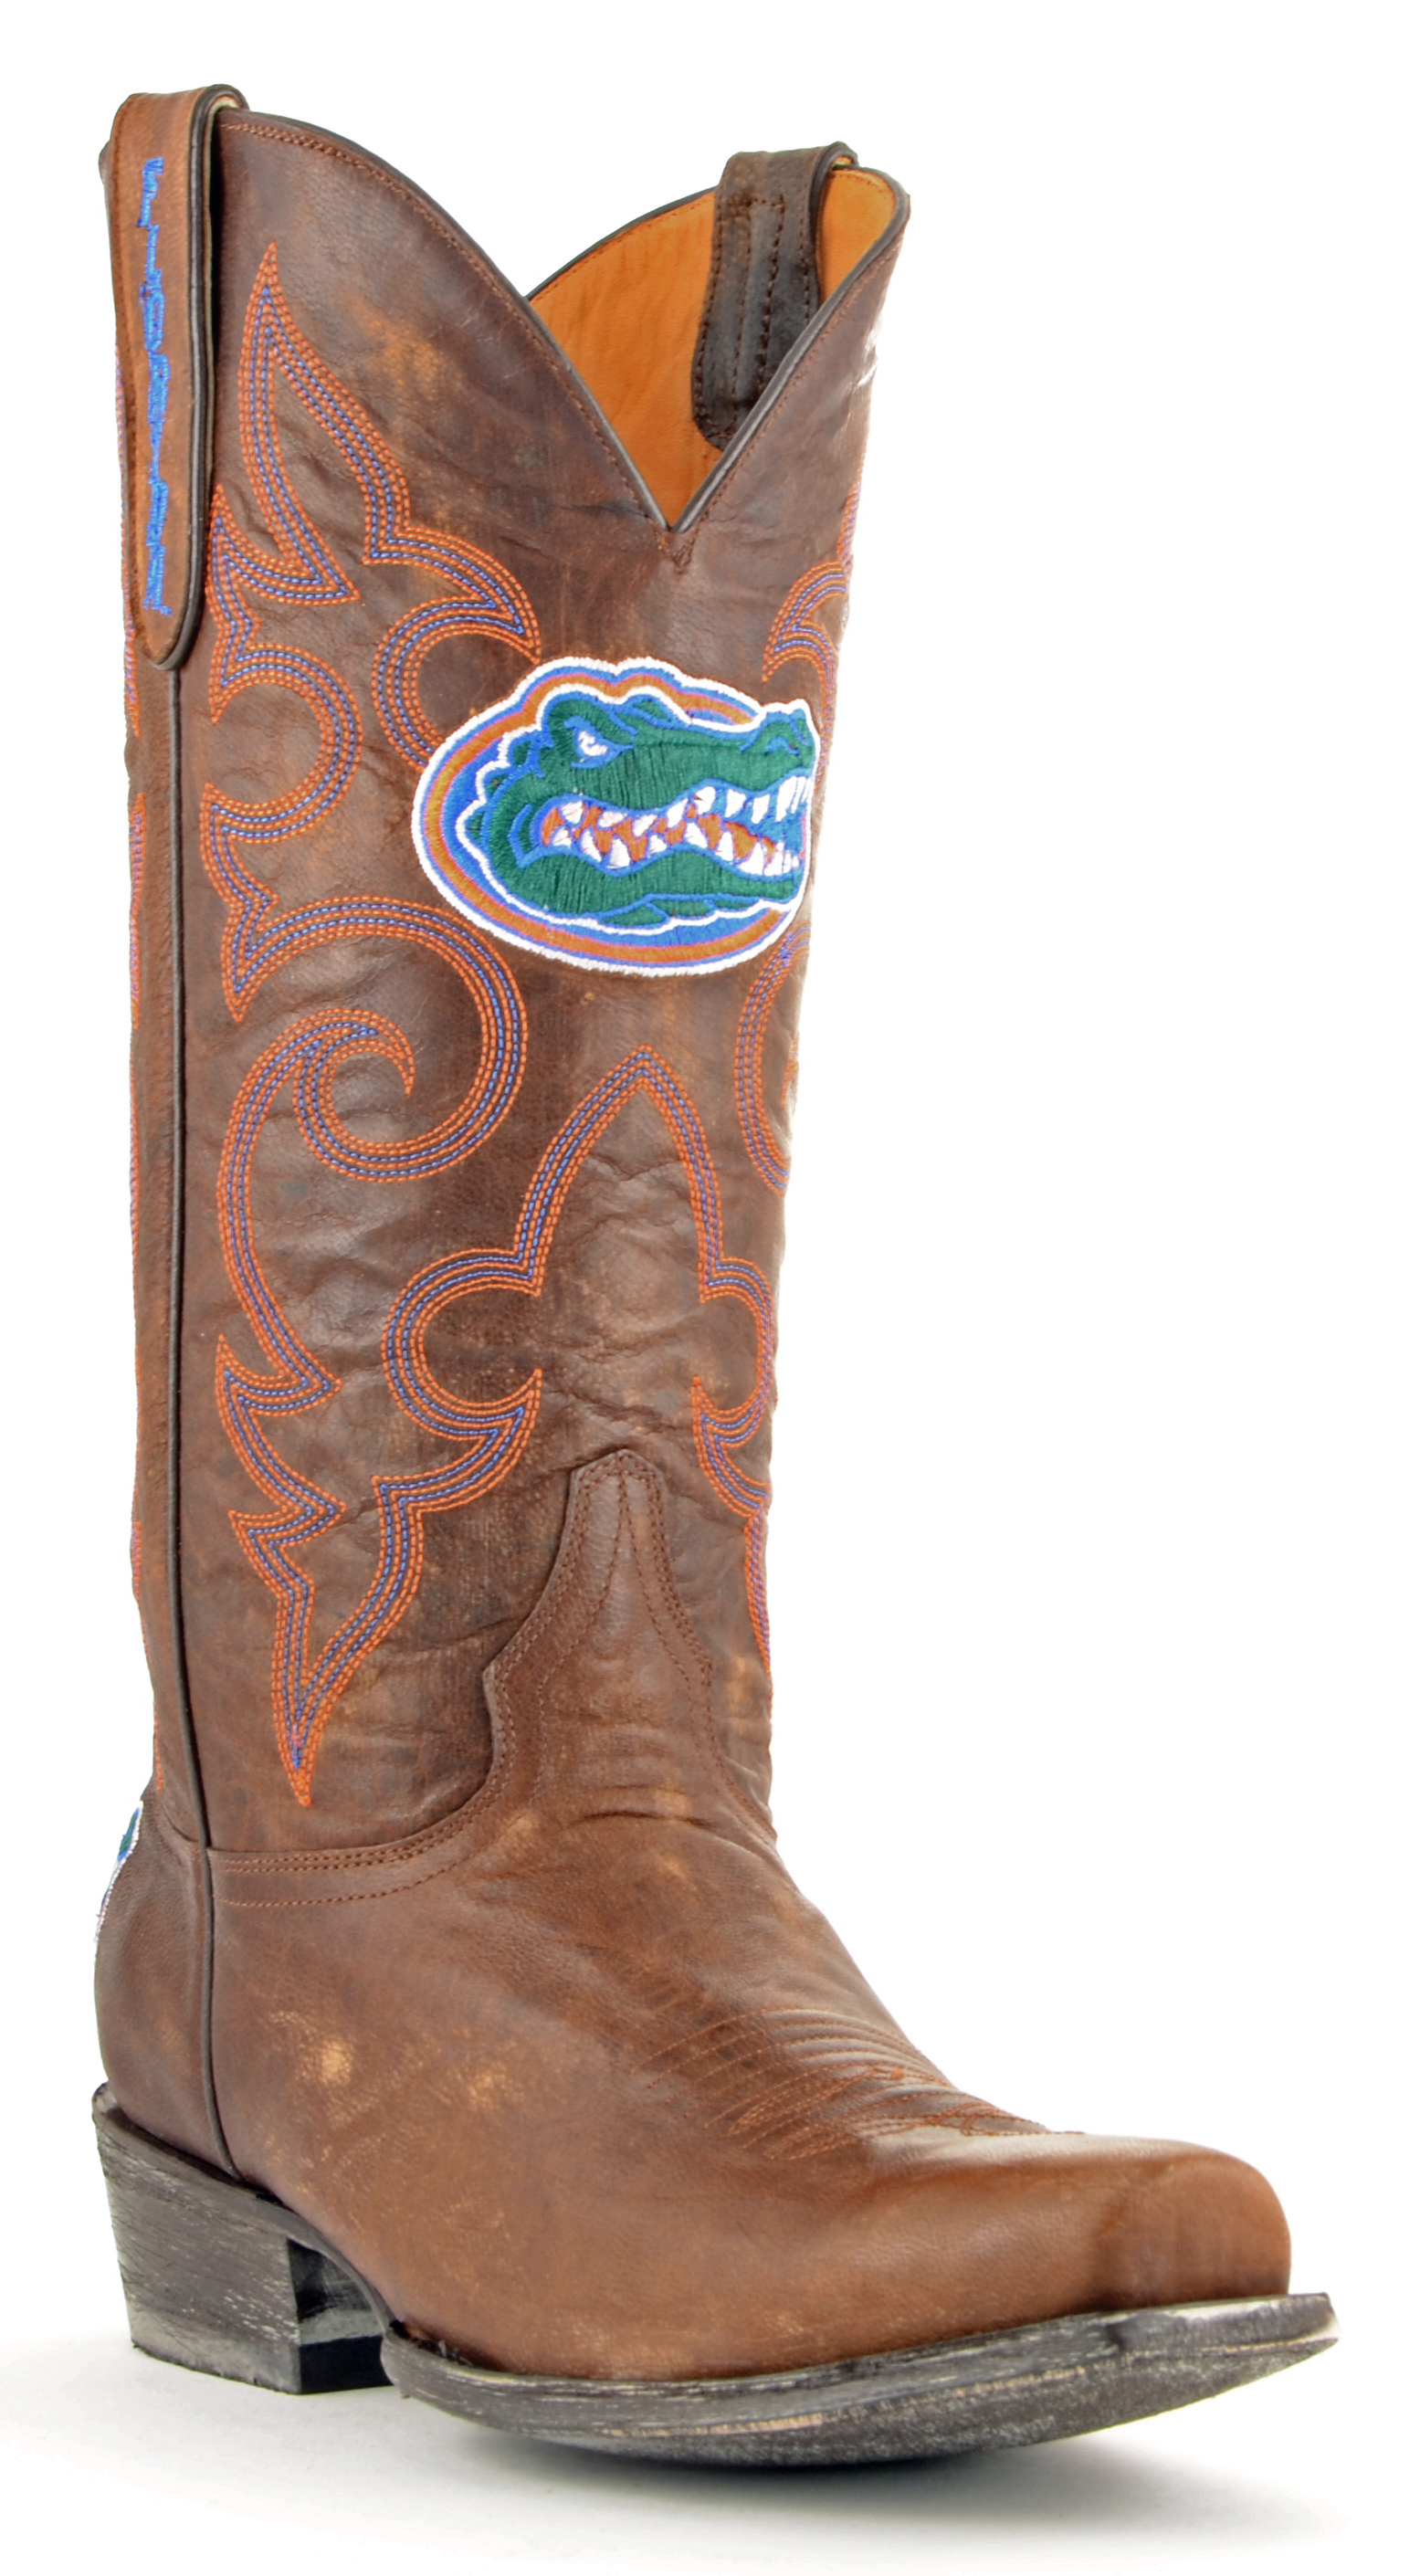 ncaa florida gators men's board room style boots, brass, 9 d (m) us by GameDay Boots